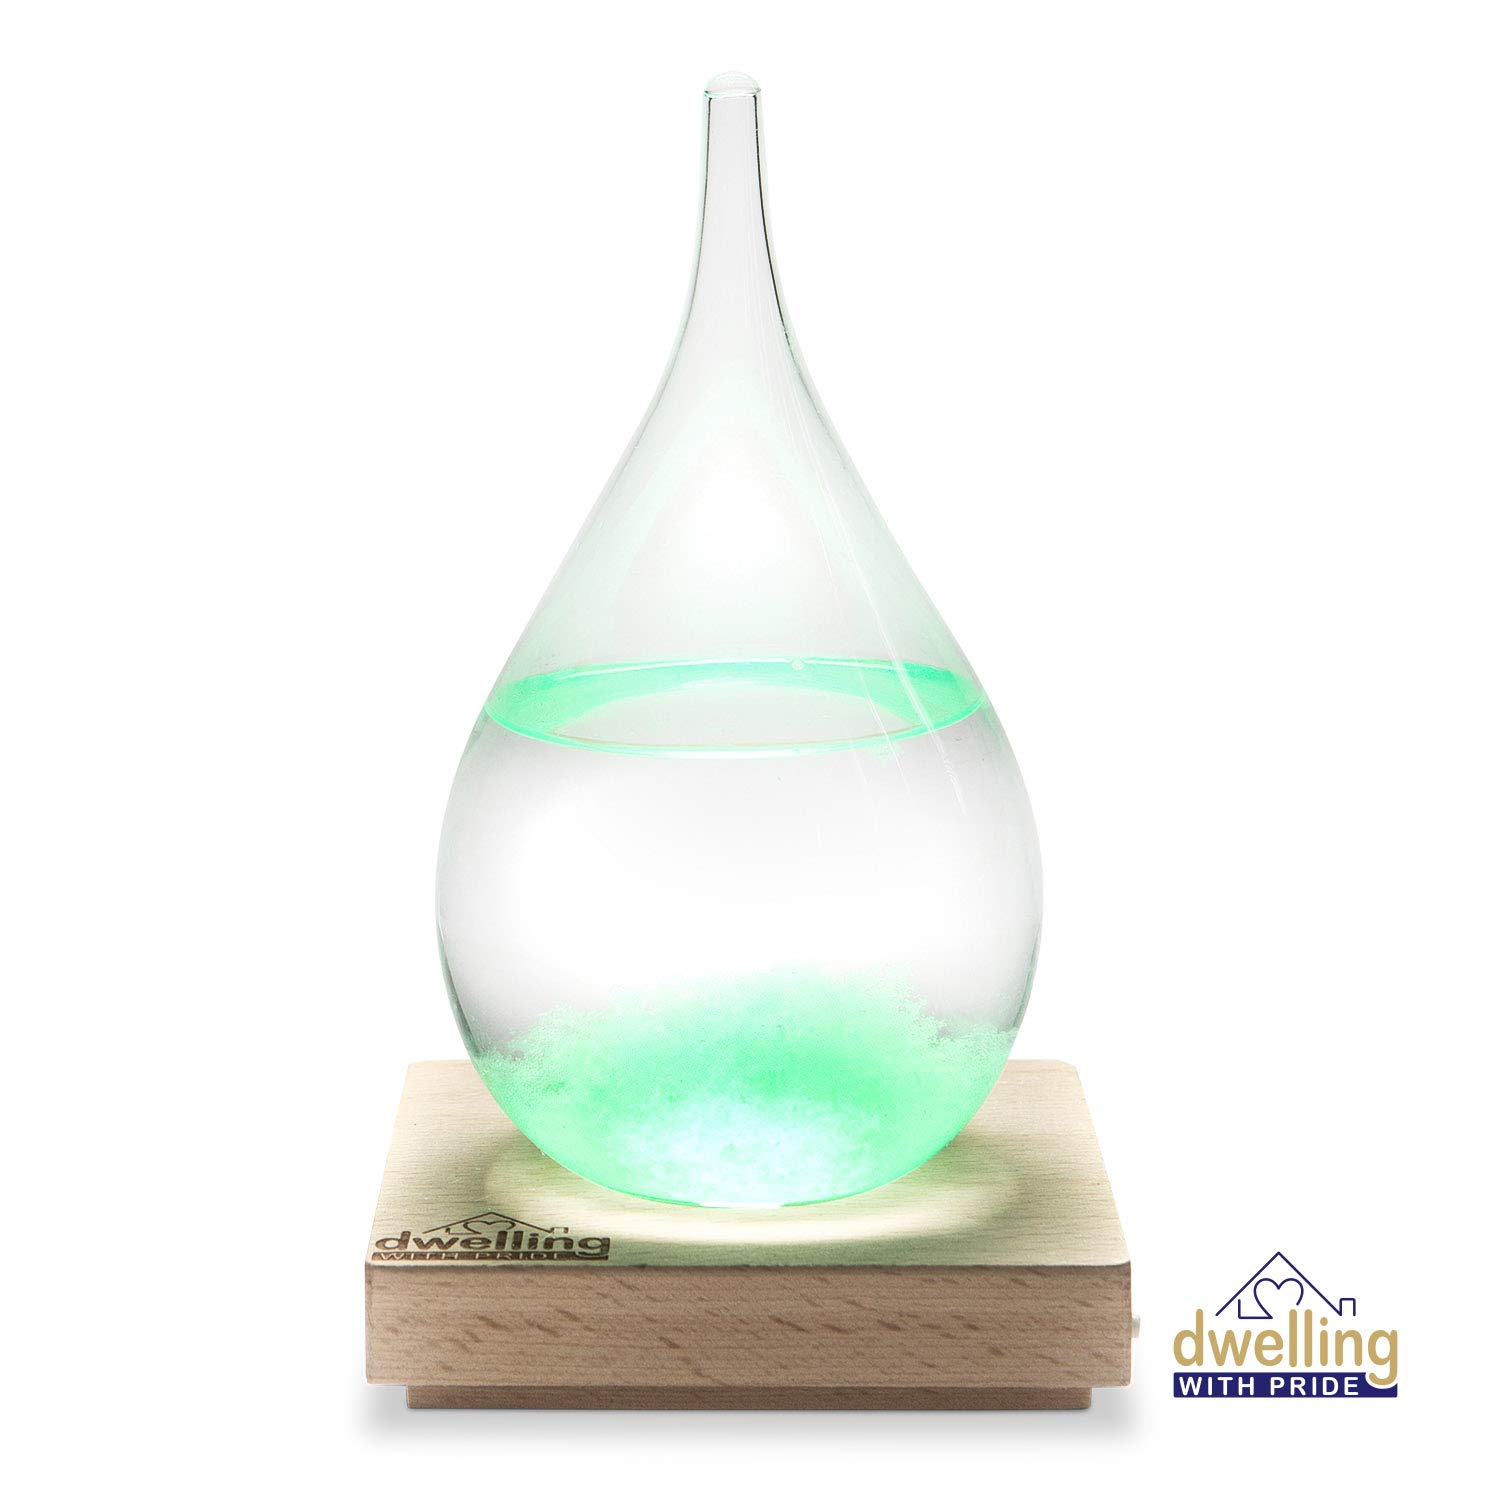 Large Storm Glass Mini Weather Station with Light Up LED Base | Lighted Home Decor in Shape of Water Drop for Desktop, Desks, Shelf and Tables | Creative Temperature Gauge Gifts | Multi-Color Options